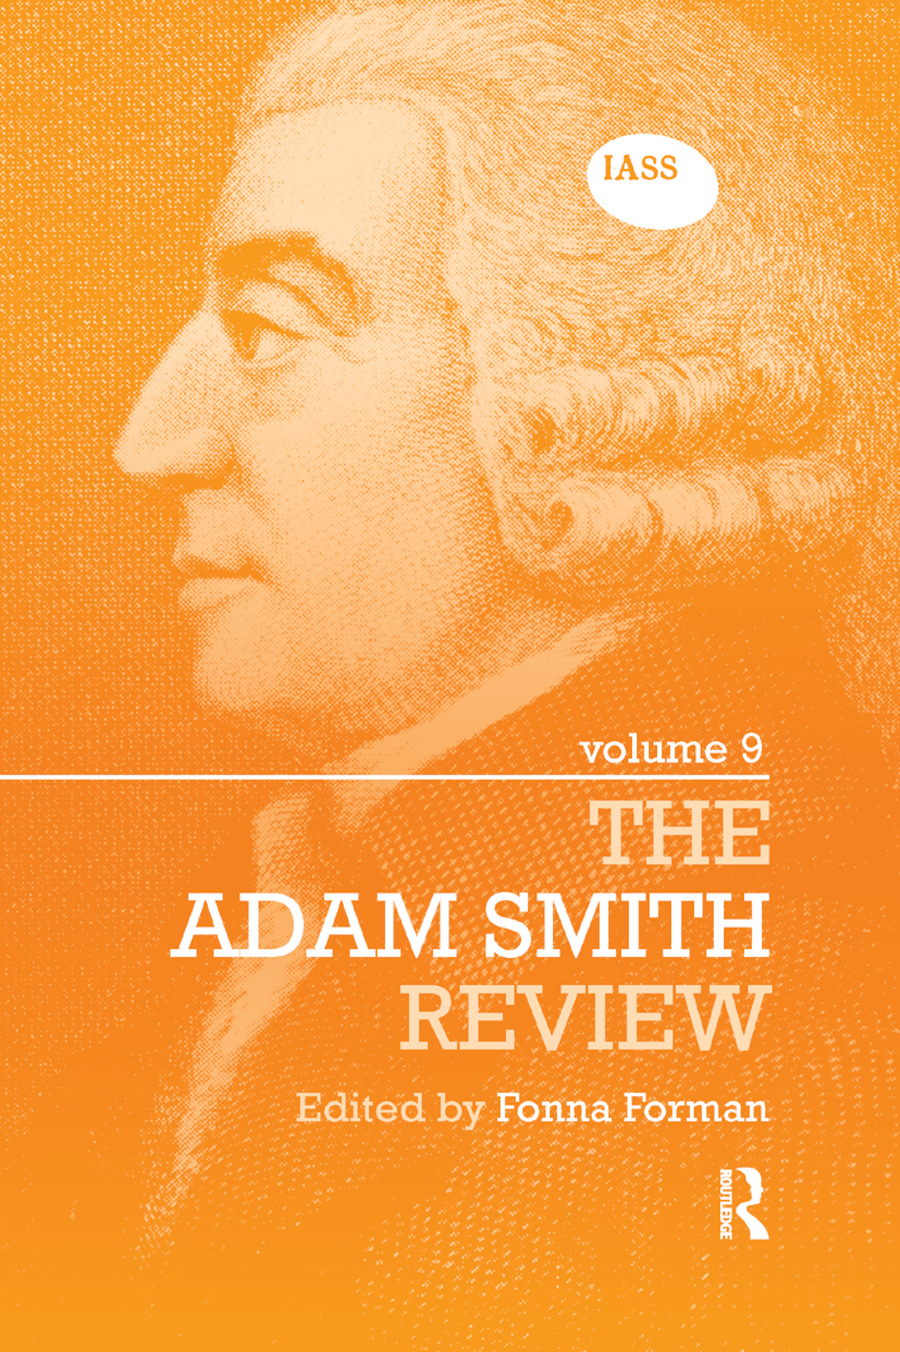 The Adam Smith Review: Volume 9 book cover